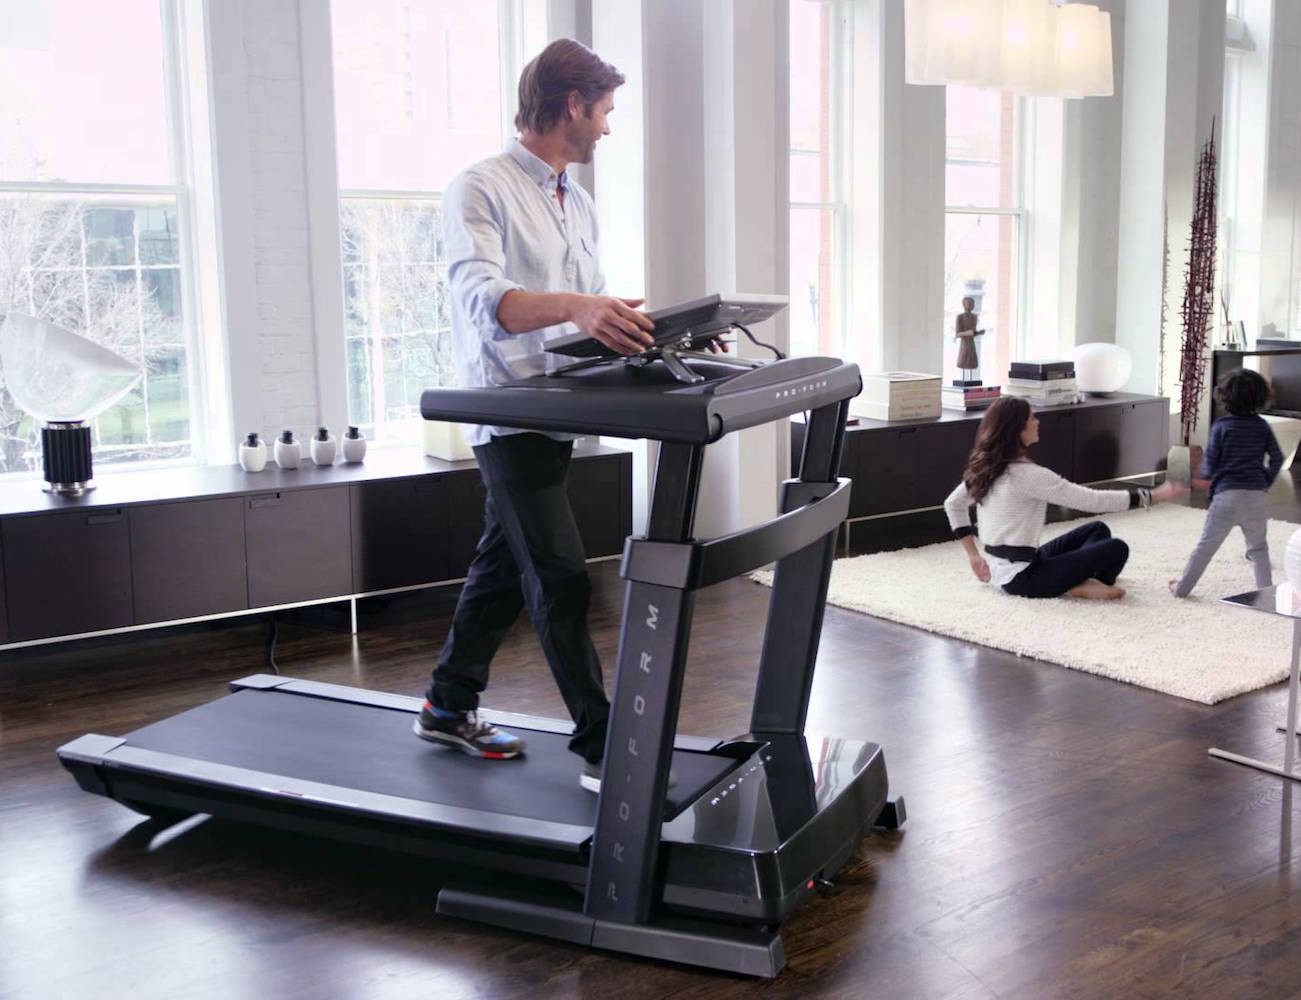 300+ Ways to Workout in the 21st Century